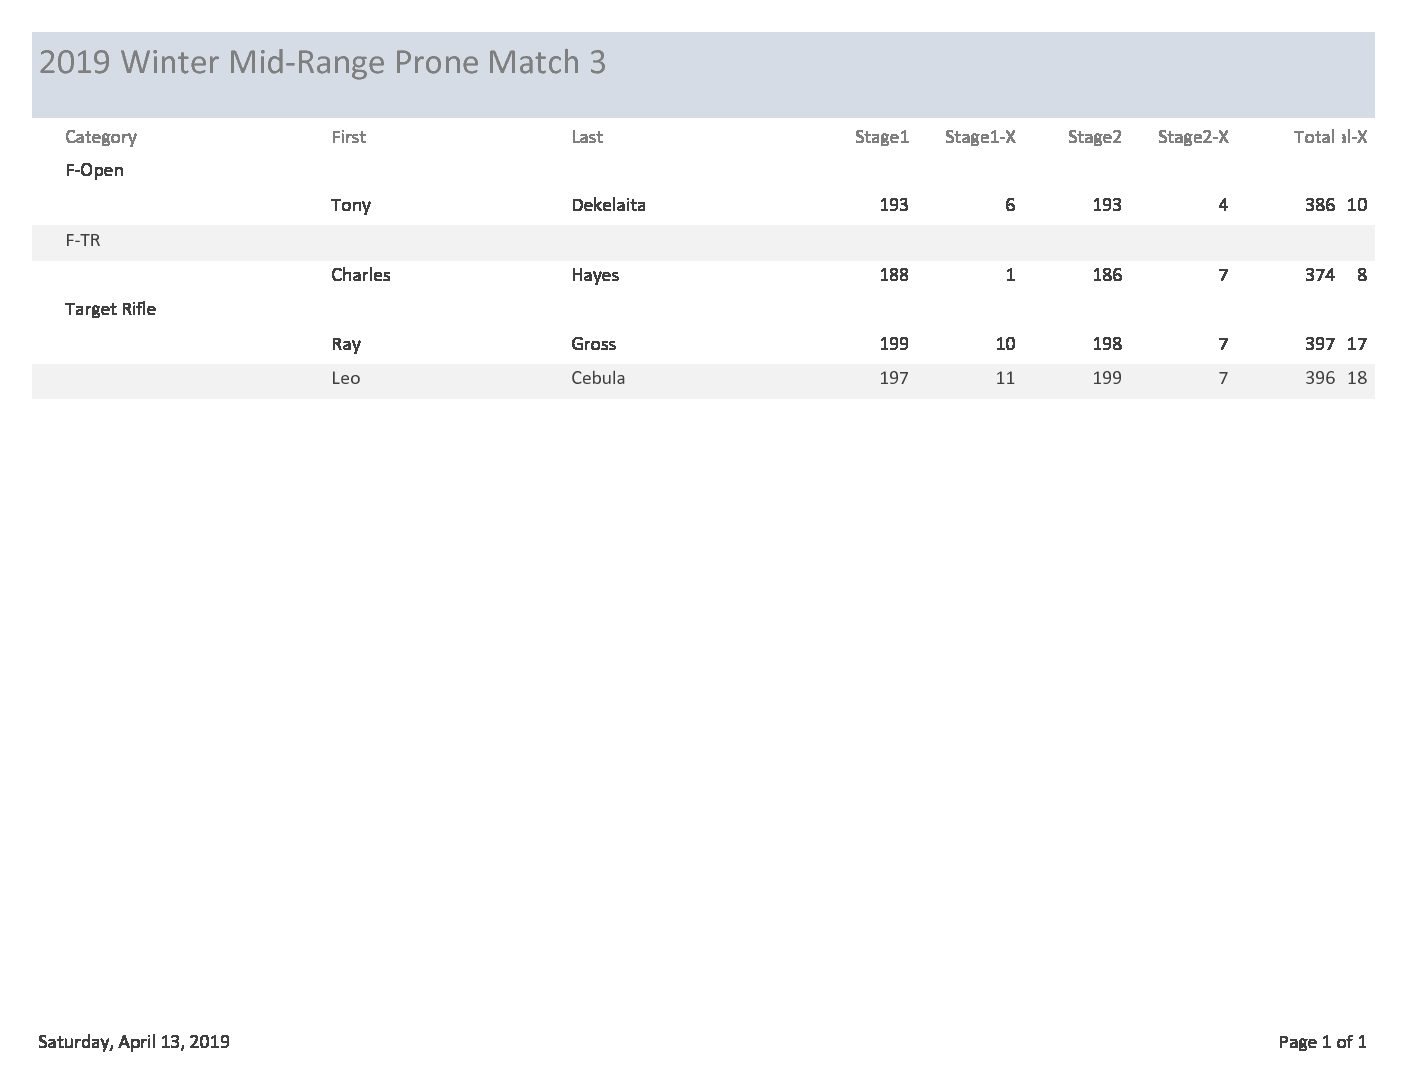 2019 Winter Mid-Range Prone League – Match 3 Results